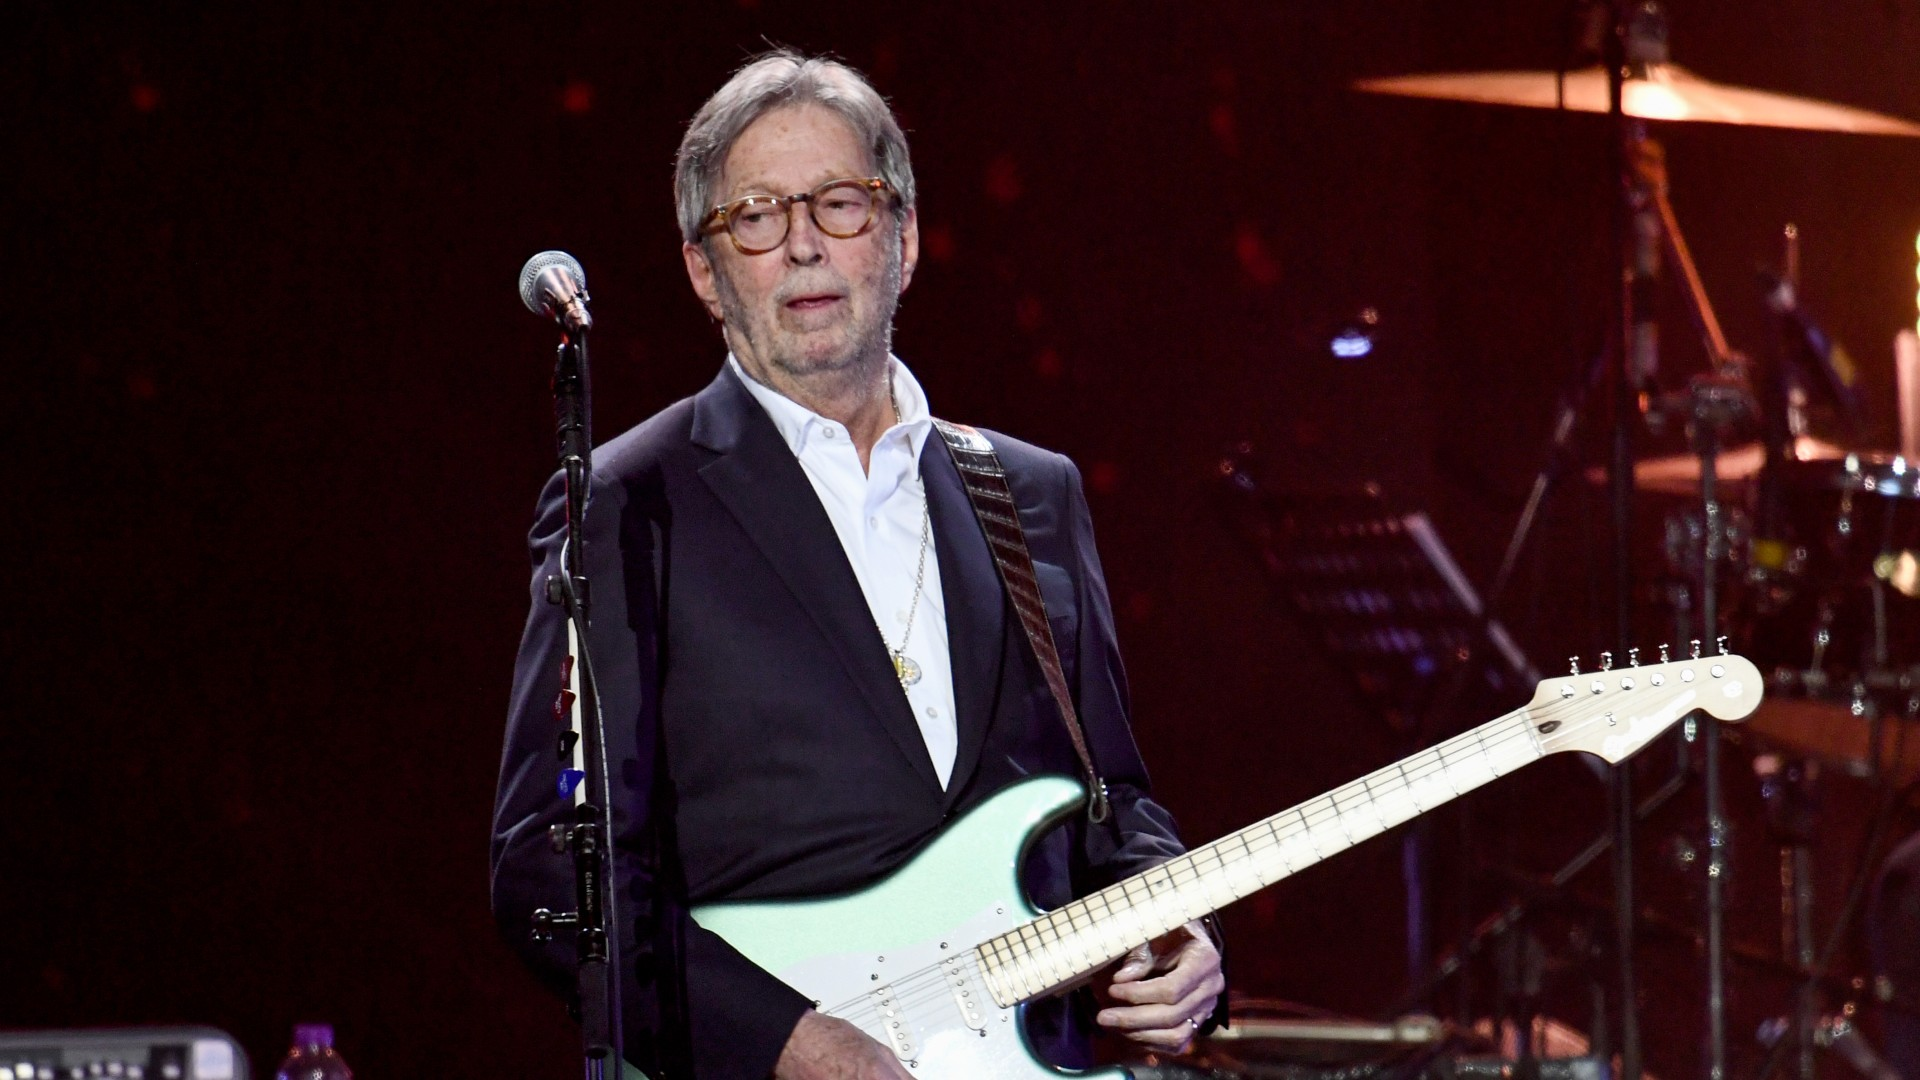 Eric Clapton performs on stage during Music For The Marsden 2020 at The O2 Arena on March 03, 2020 in London, England. (Gareth Cattermole/Getty Images)